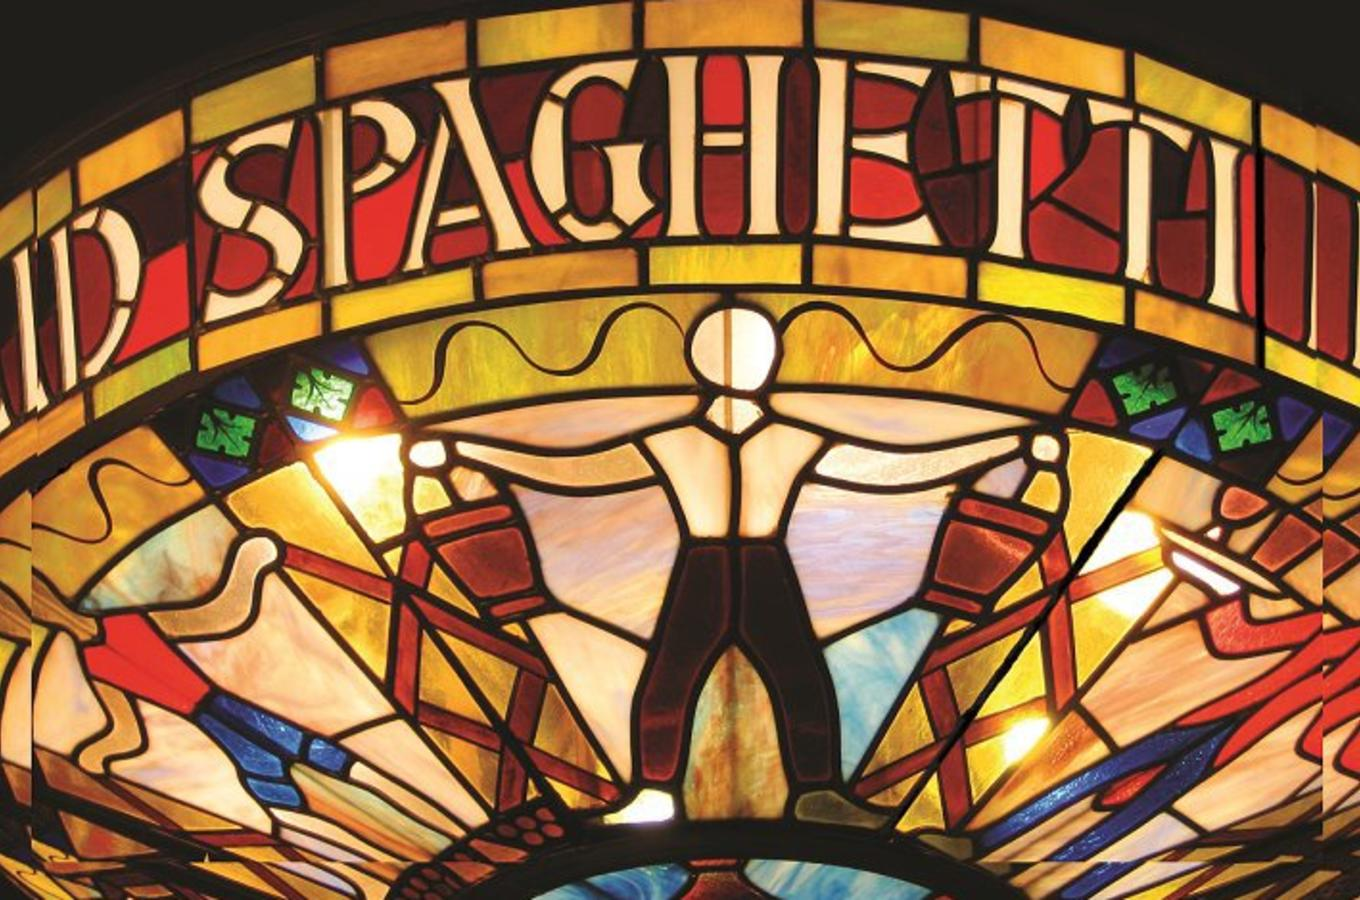 OLD SPAGHETTI FACTORY image